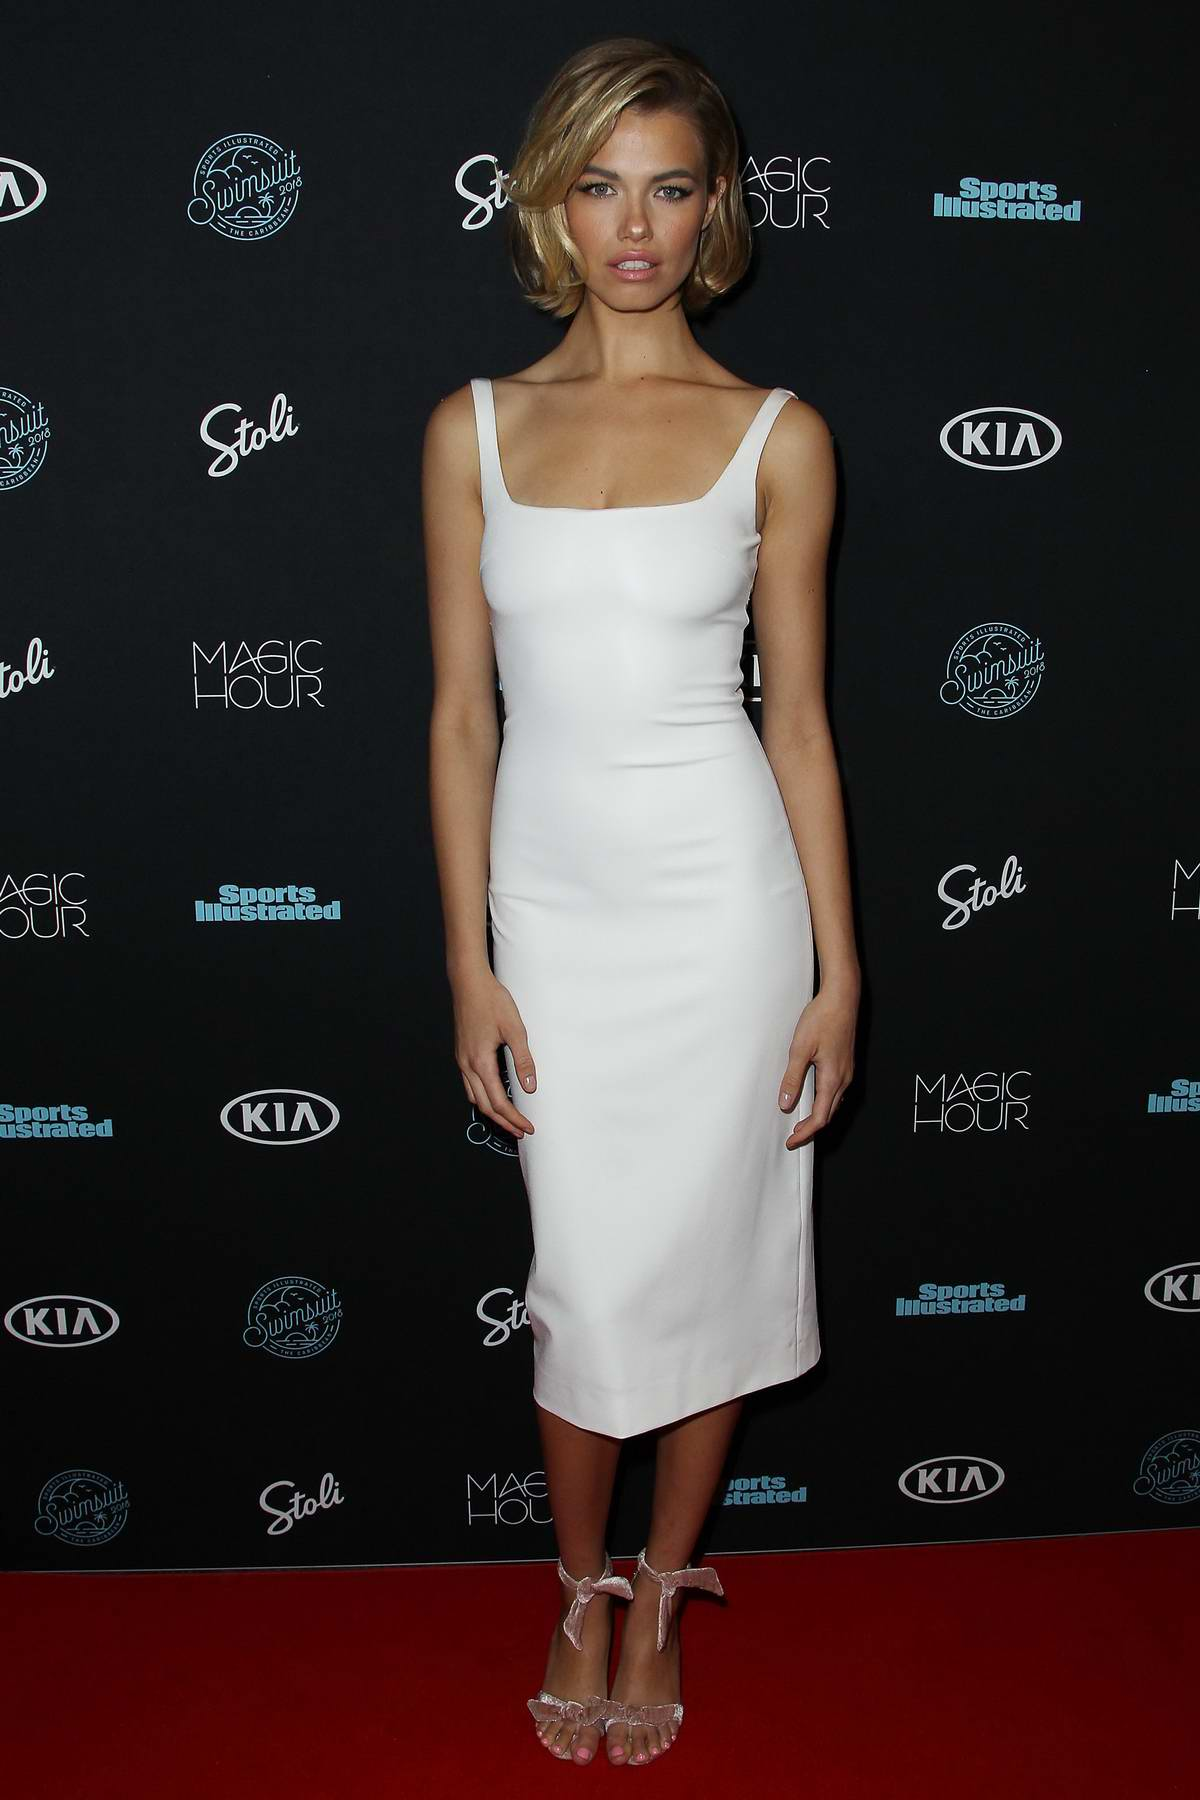 Hailey Clauson attends Sports Illustrated Swimsuit 2018 Launch Event in New York City